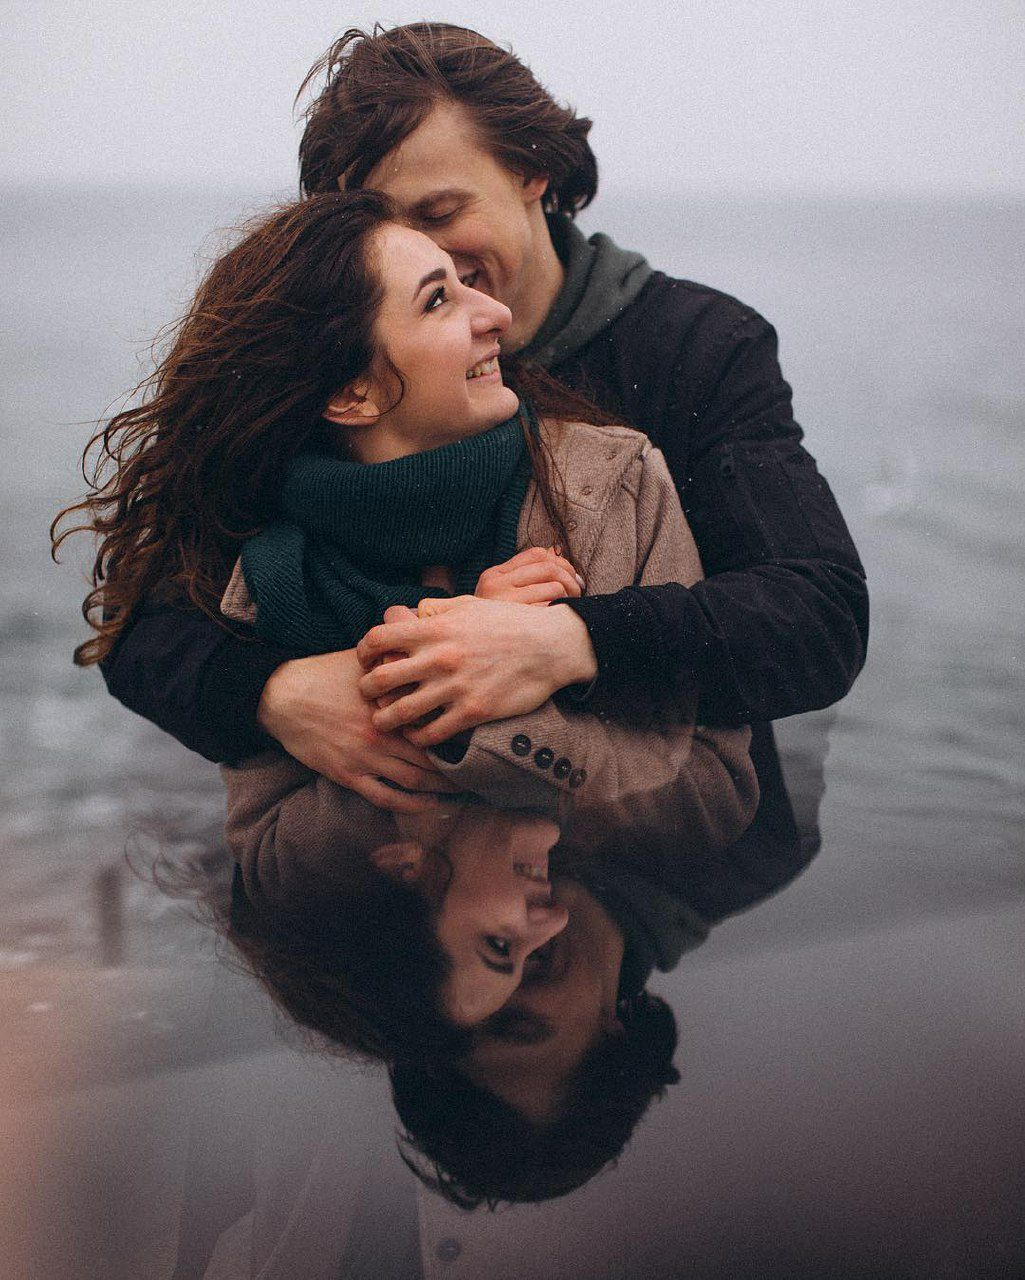 romantic images of kisses and hugs of couple